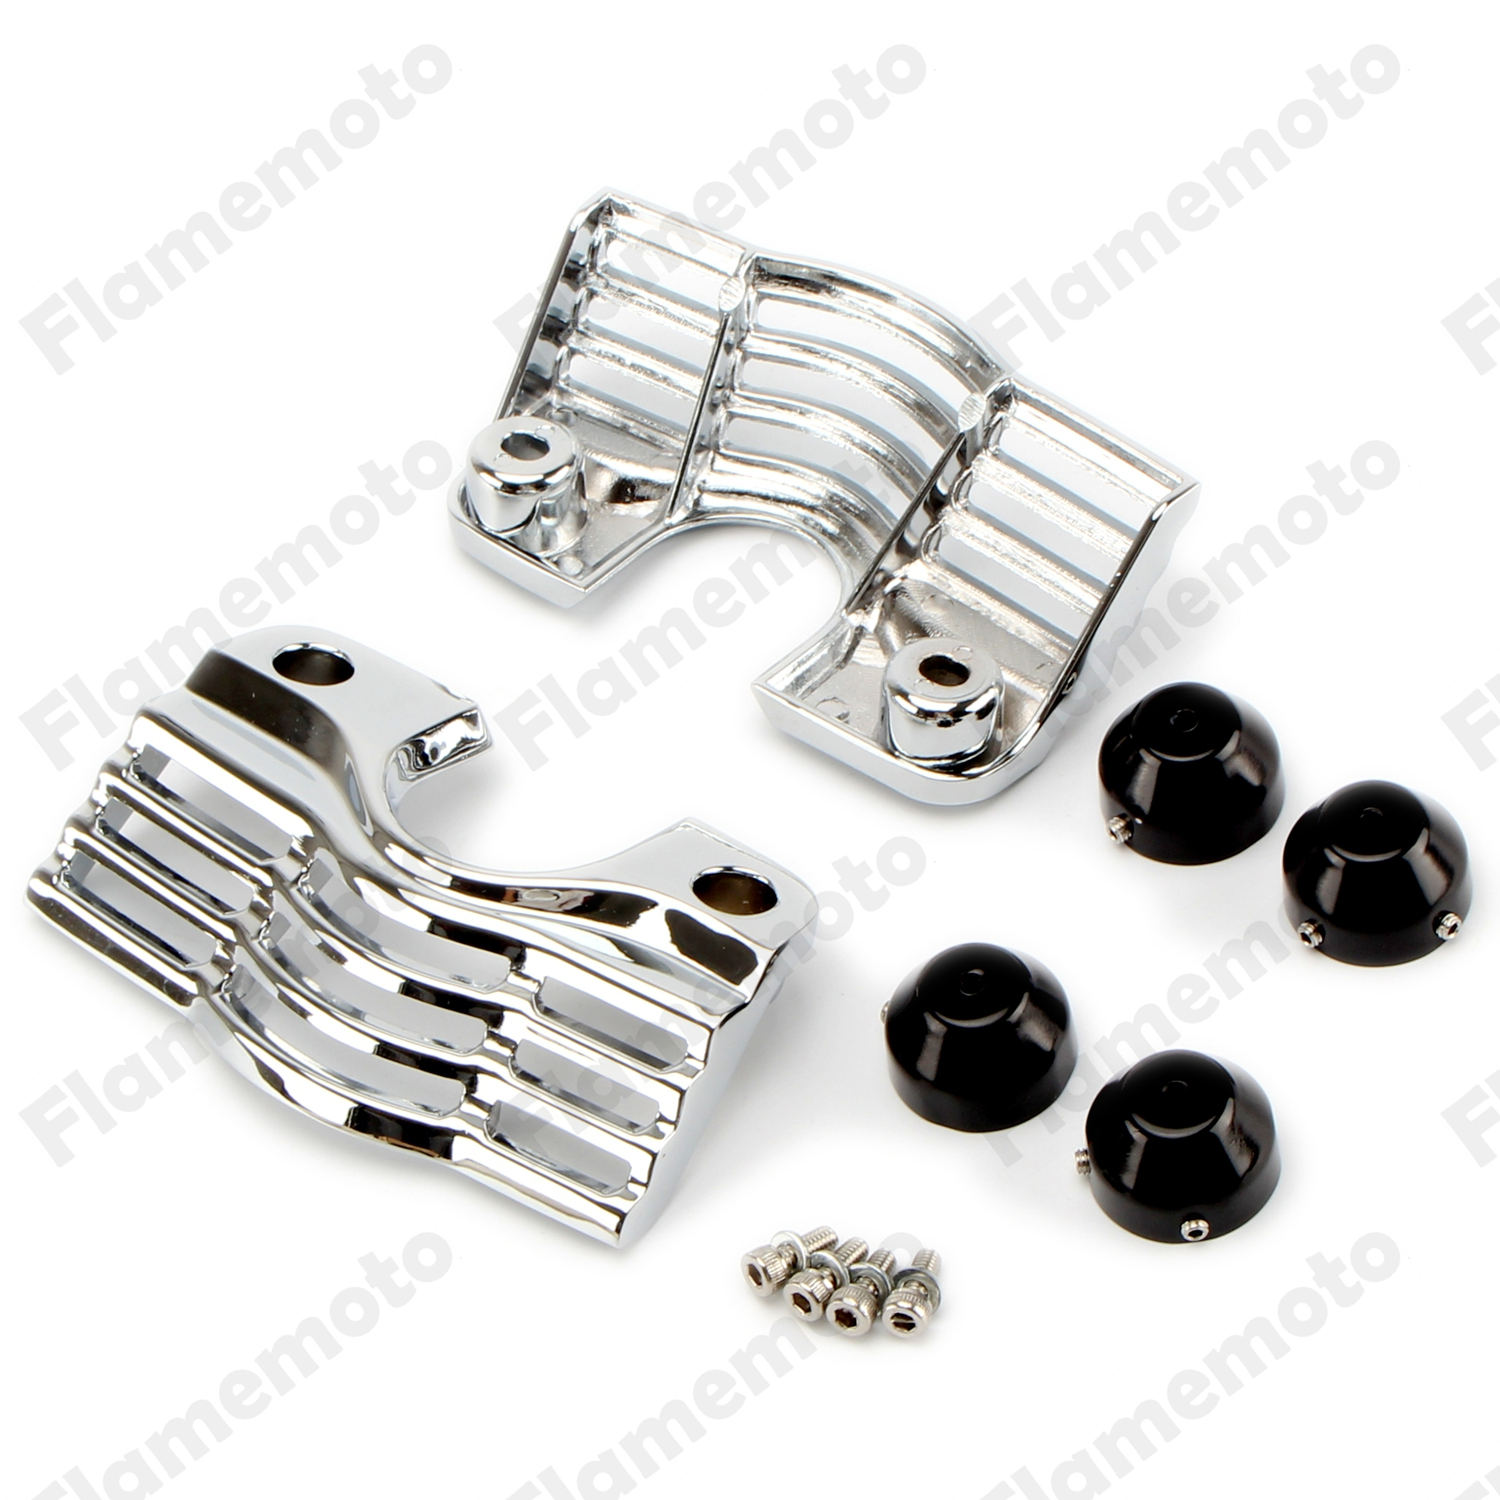 Motorbike Parts Chrome Finned Spark Slotted Plug Head Bolt Covers For Harley Trikes Road King spark storage bag portable carrying case storage box for spark drone accessories can put remote control battery and other parts